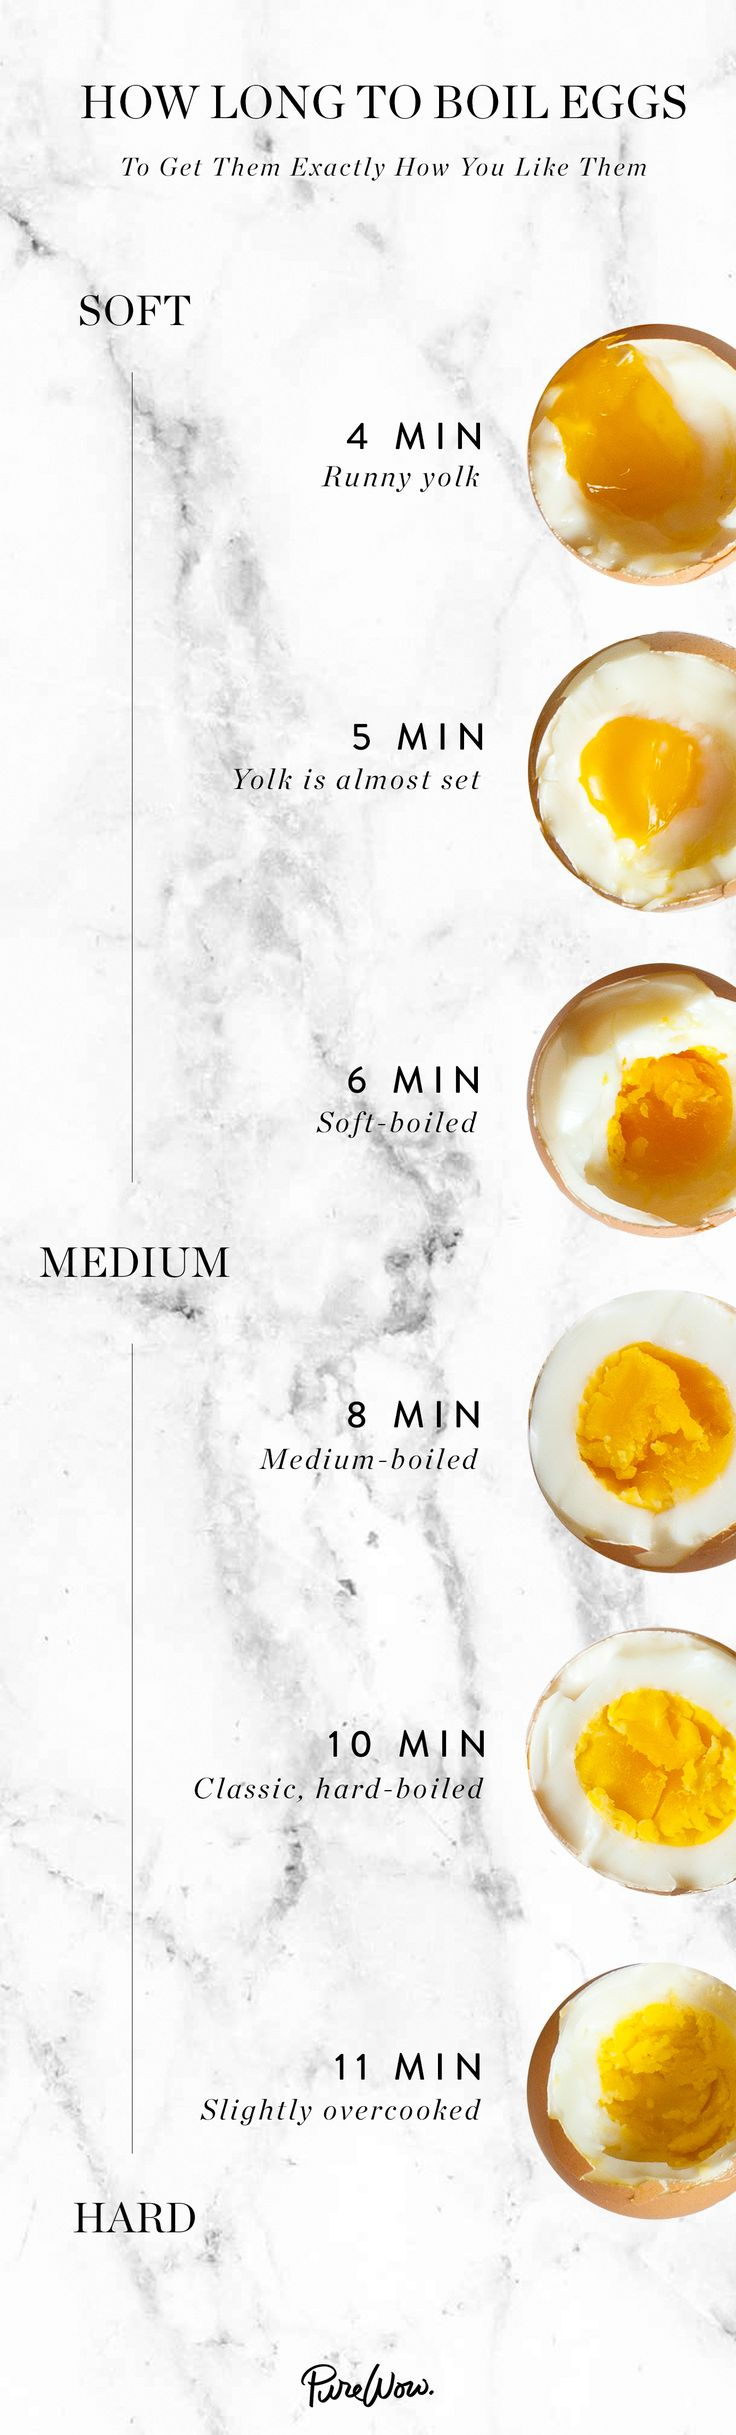 The Minute-by-Minute Guide to Boiling Eggs. Get the yolk just how you like it.